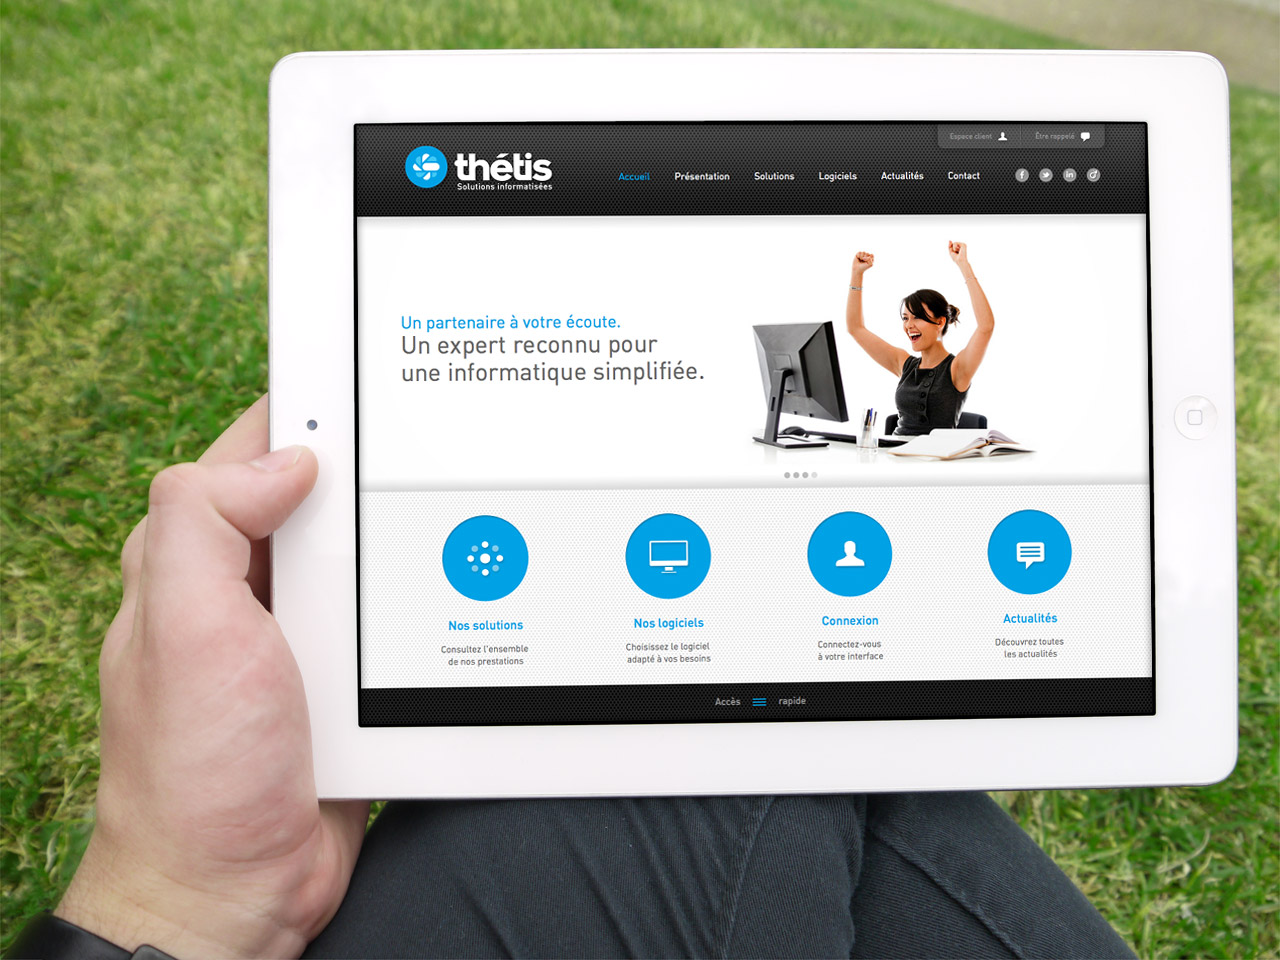 thetis-site-internet-tablette-creation-communication-caconcept-alexis-cretin-graphiste